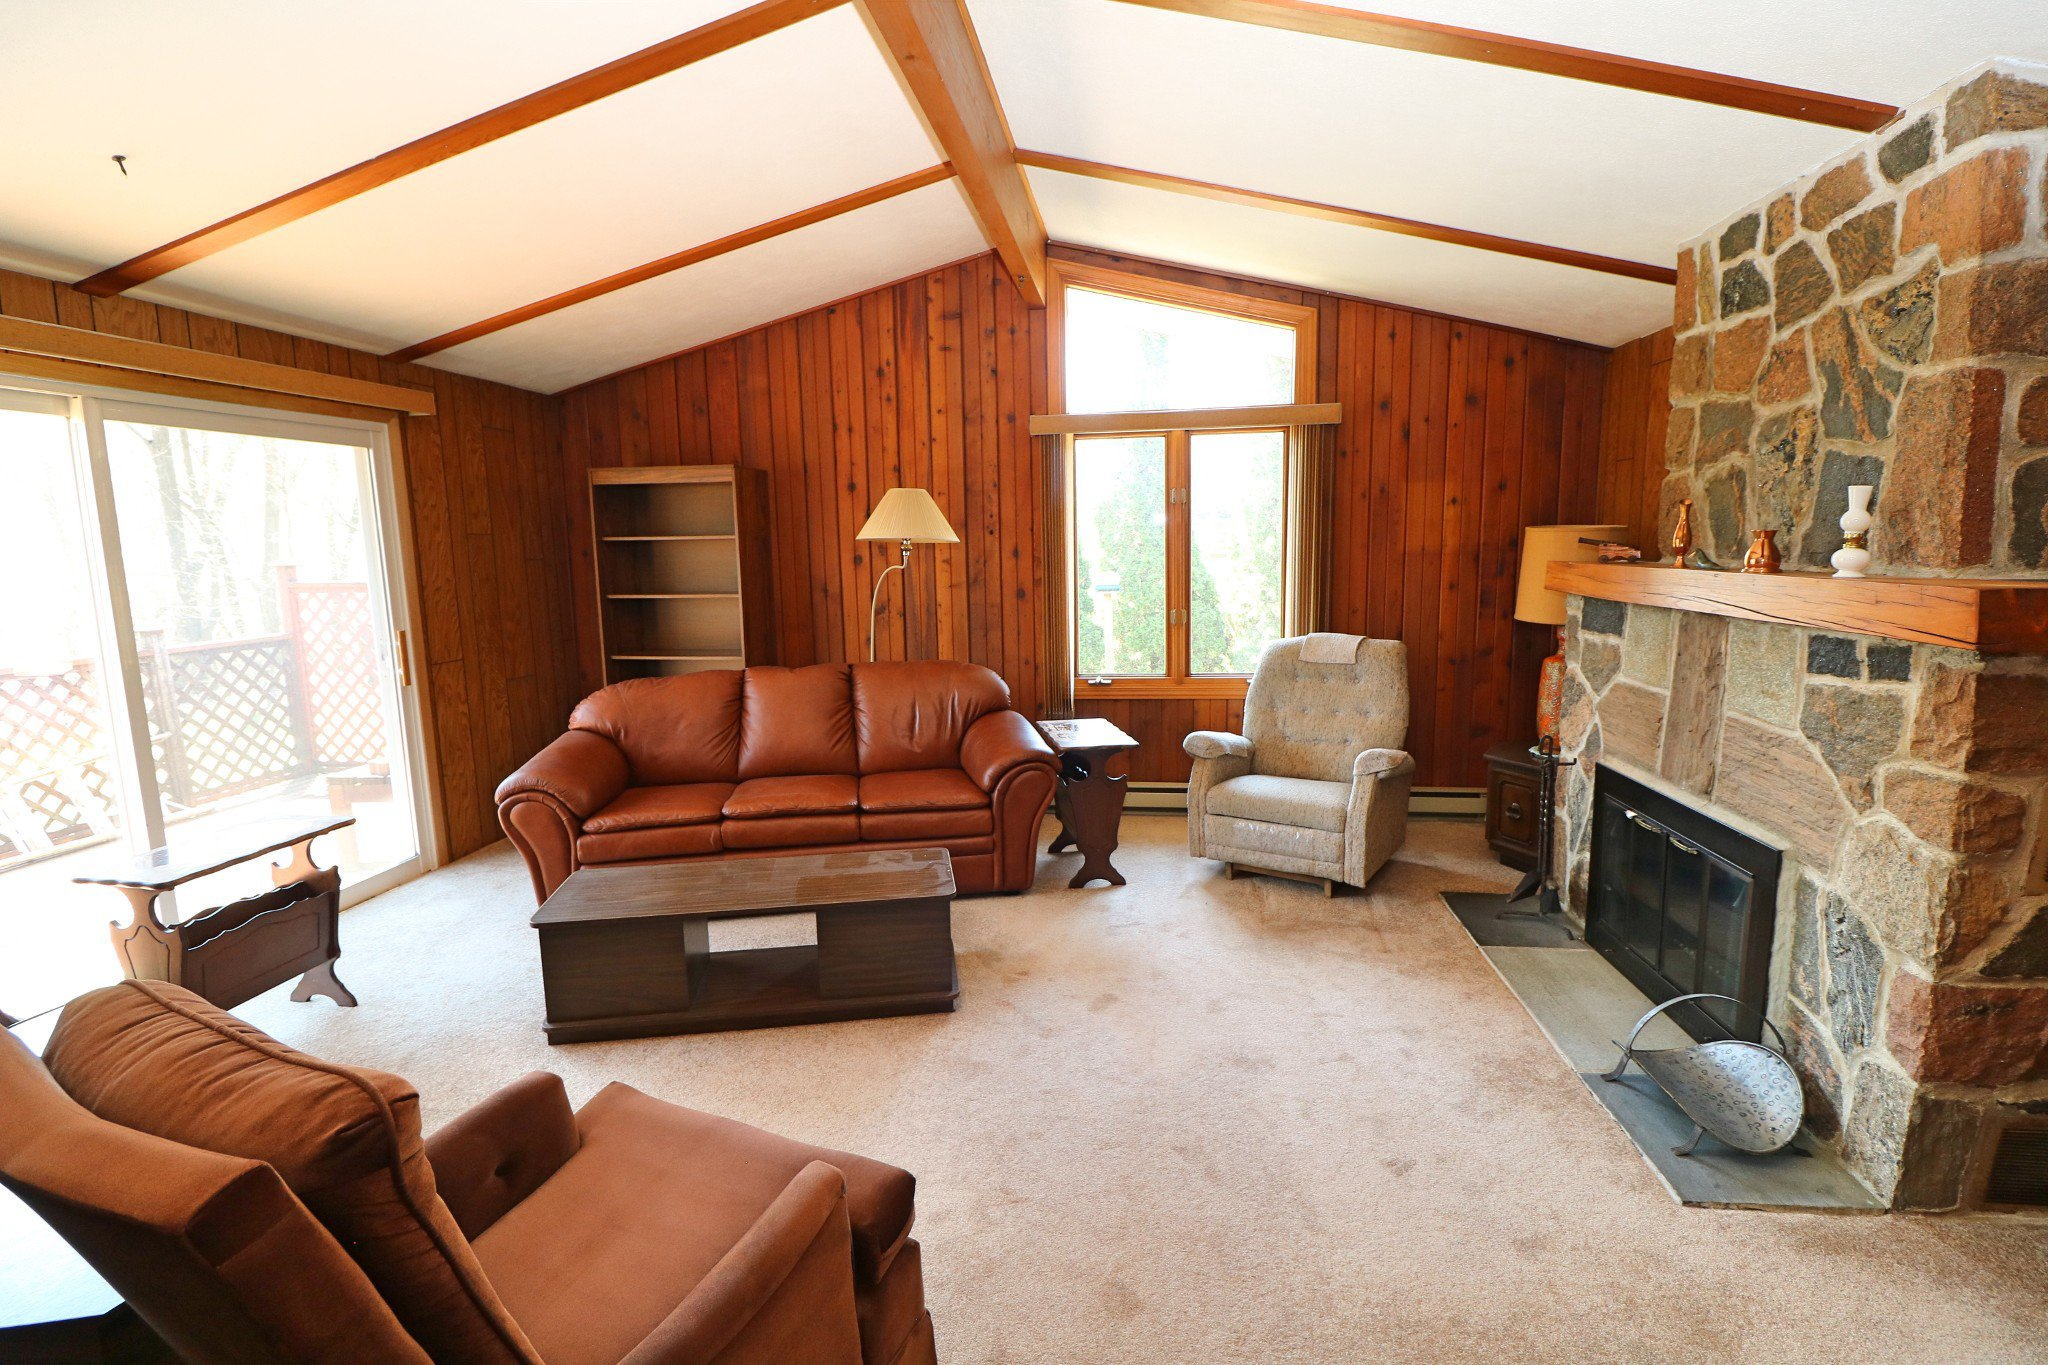 Photo 7: Photos: 37 Halstead Drive in Roseneath: Residential Detached for sale : MLS®# 192863